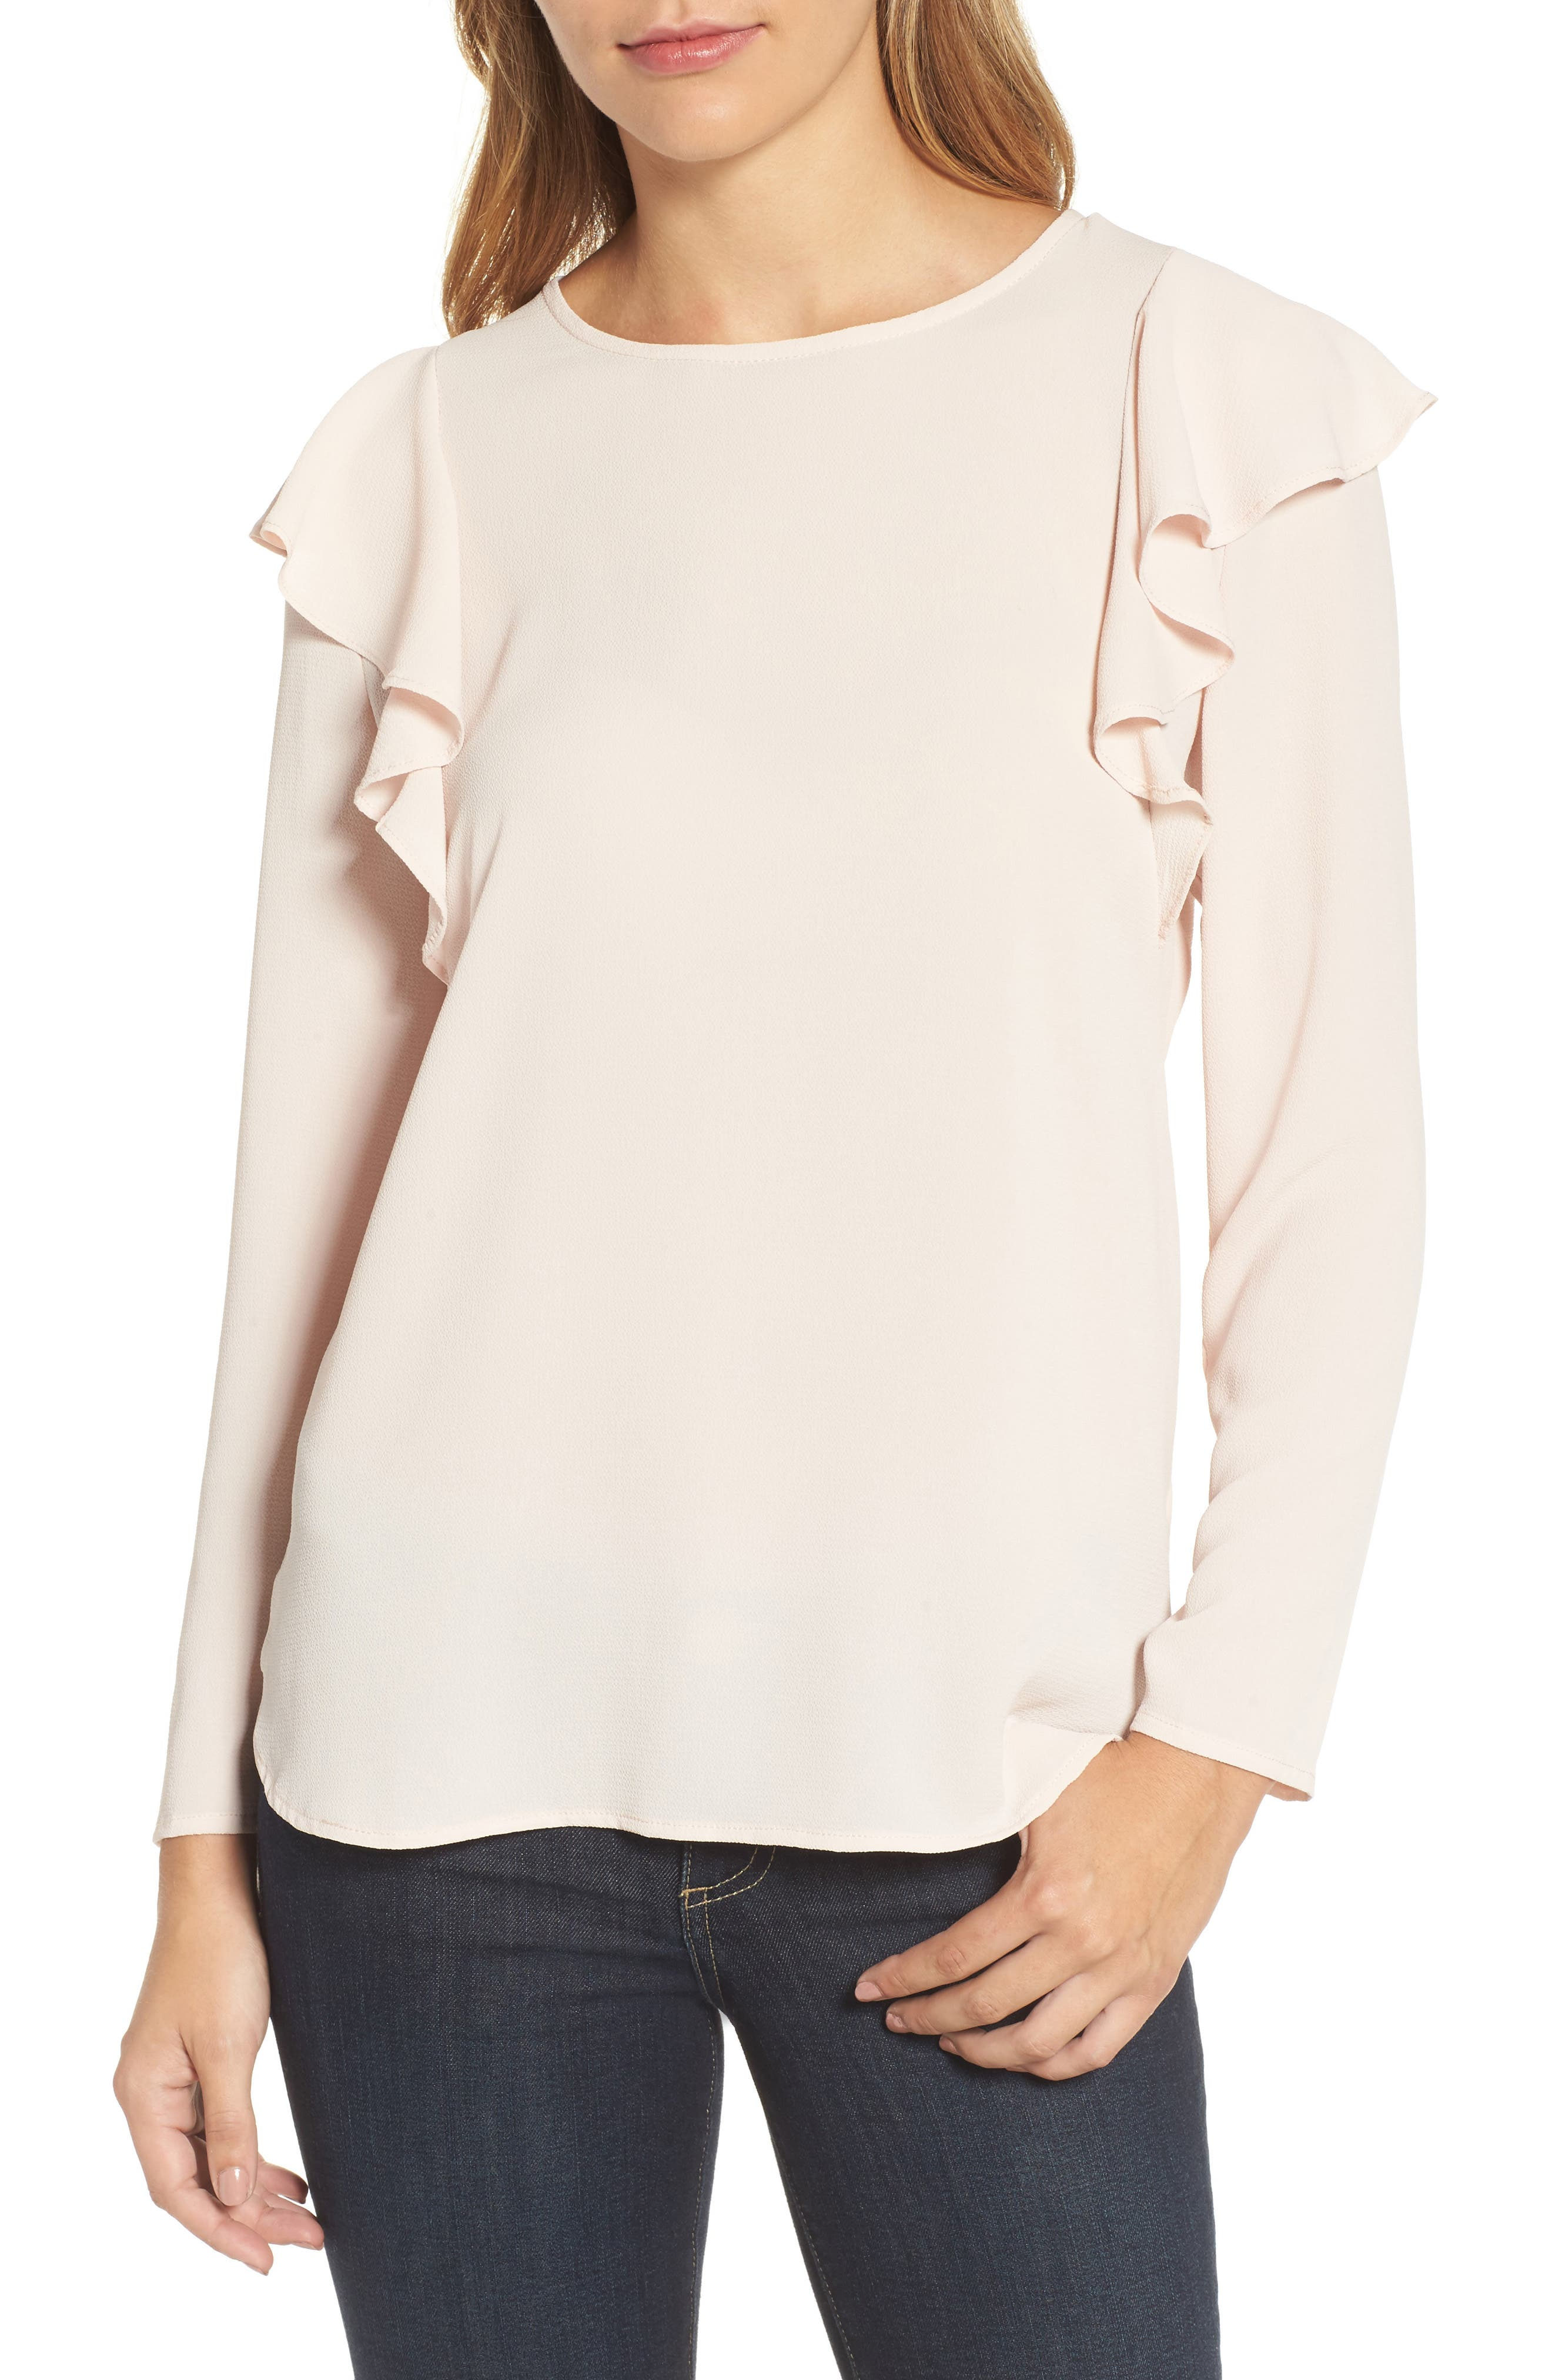 Alternate Image 1 Selected - KUT from the Kloth Maki Ruffle Shoulder Top